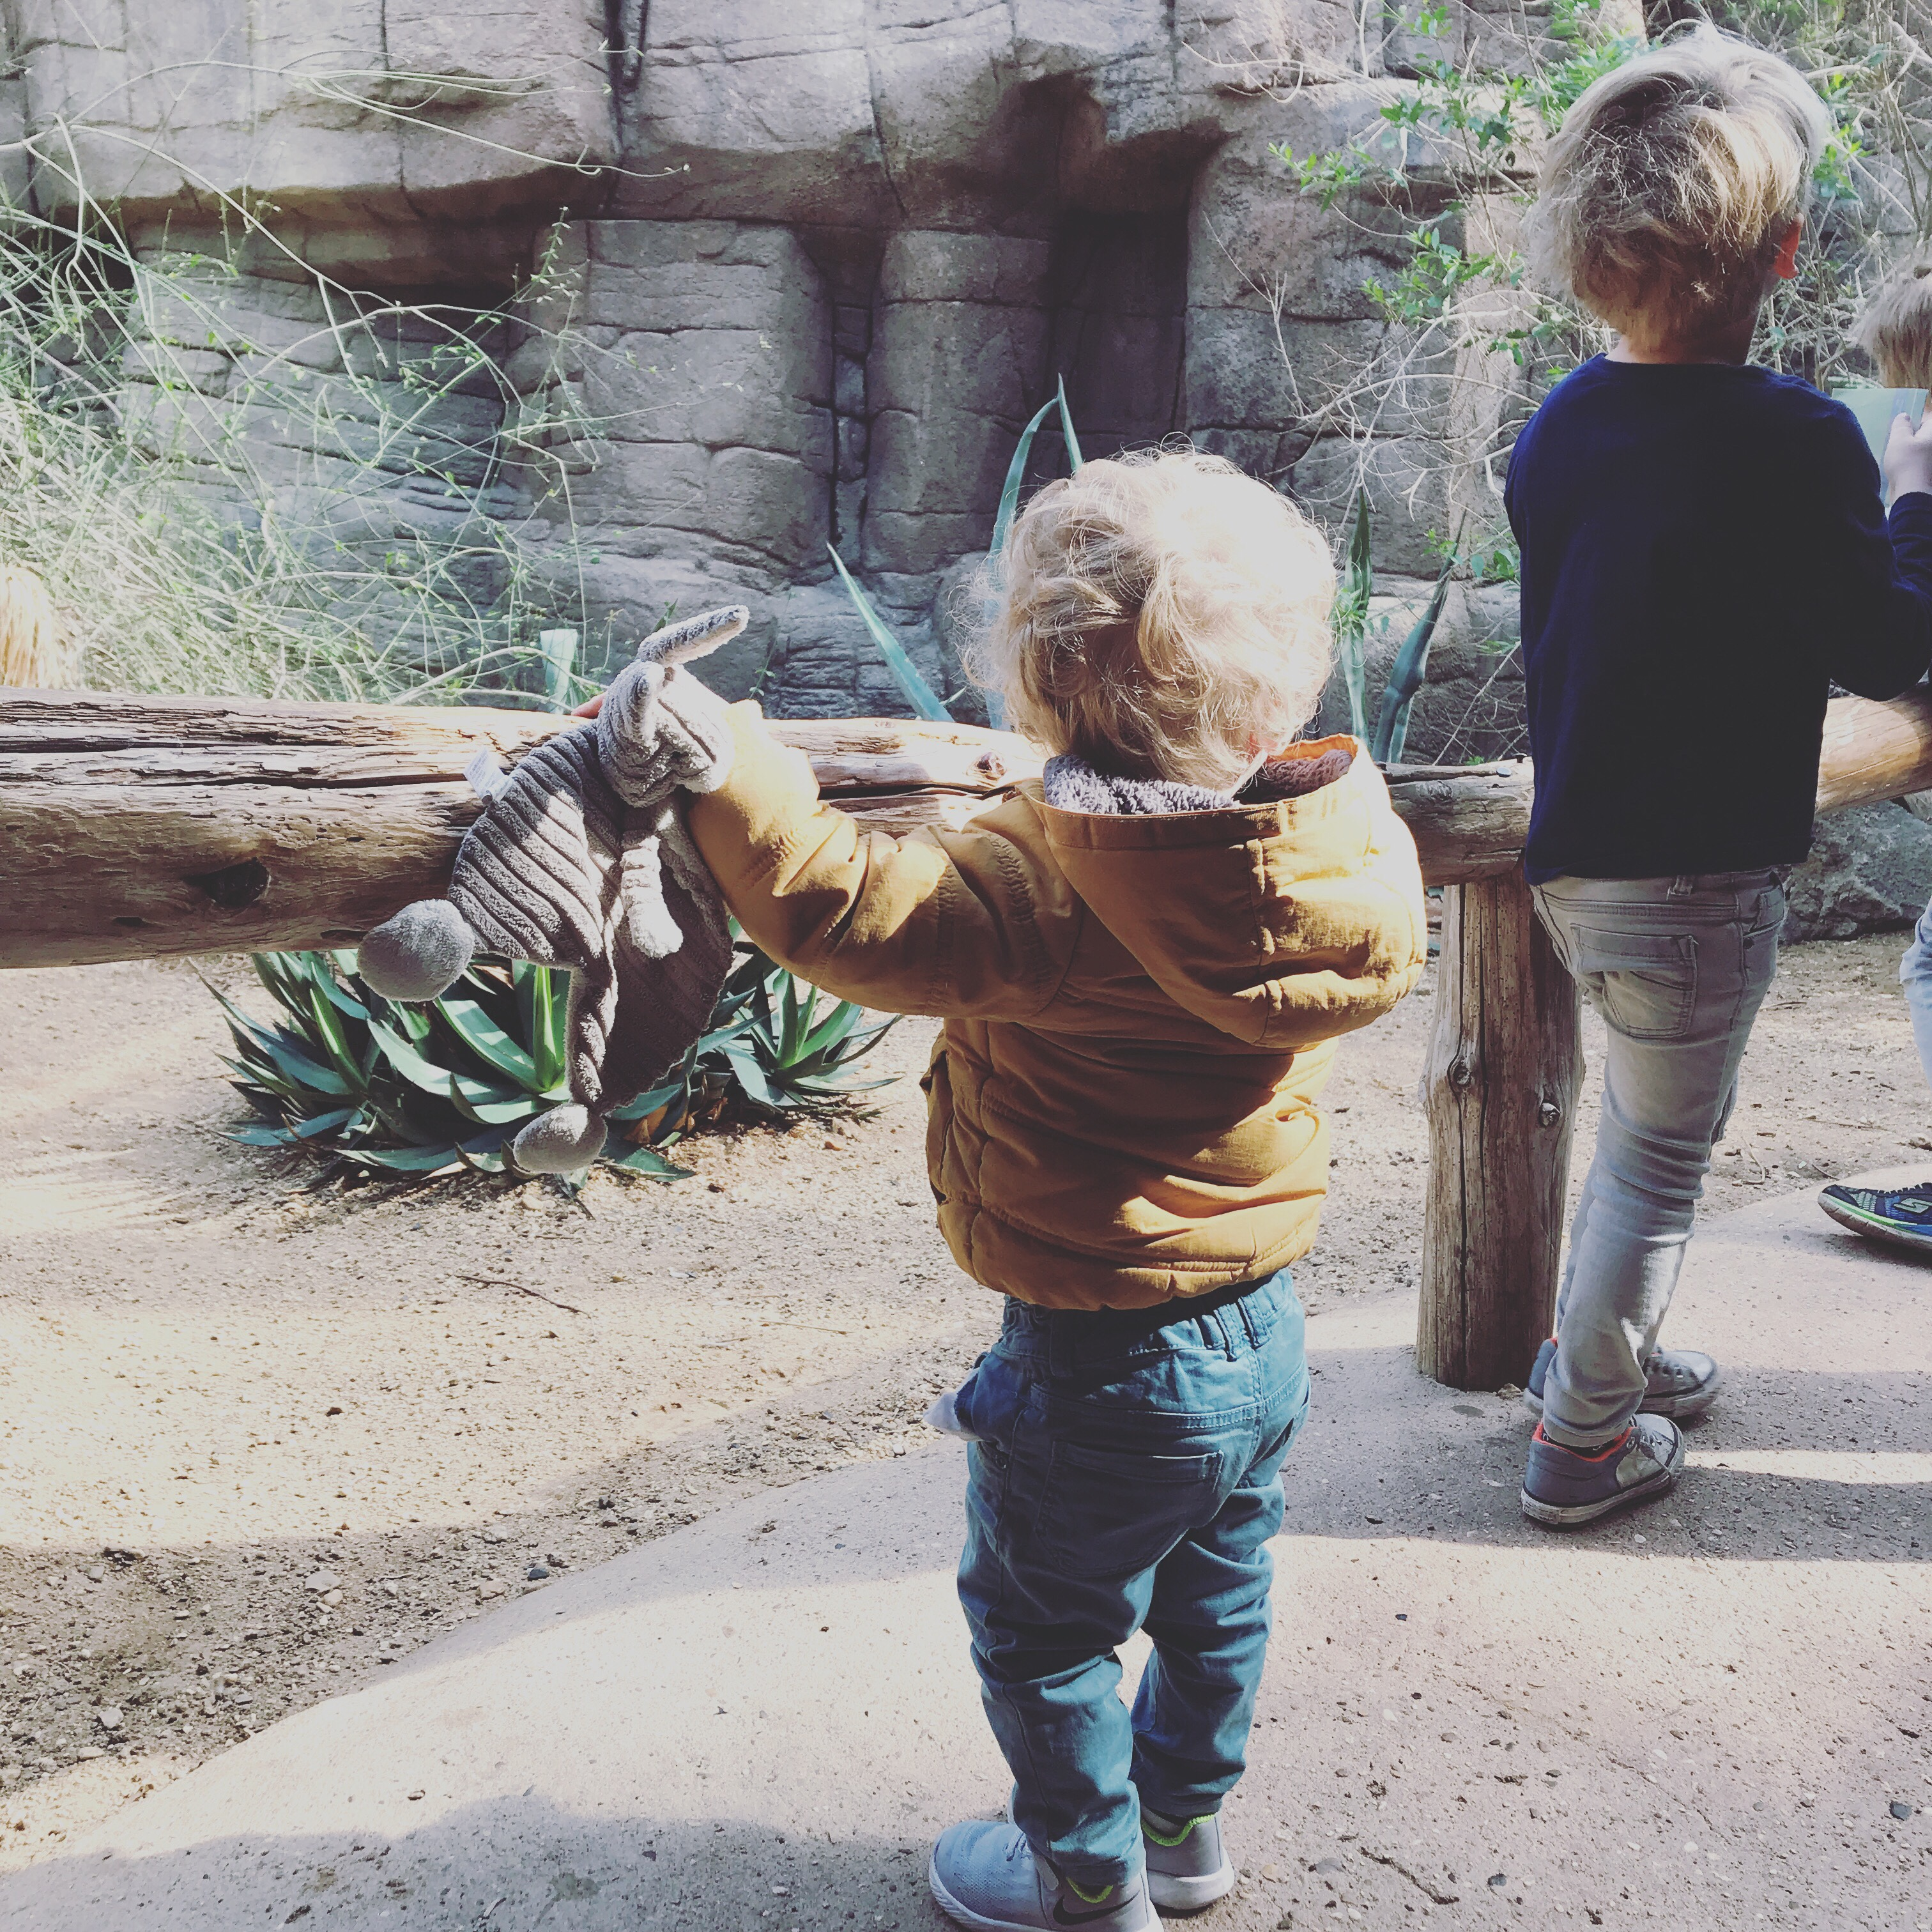 photodiary dierentuin kids kinderen feest verjaardag mama mamablog mamablogger blog blogger lifestyle laviedemama.nl